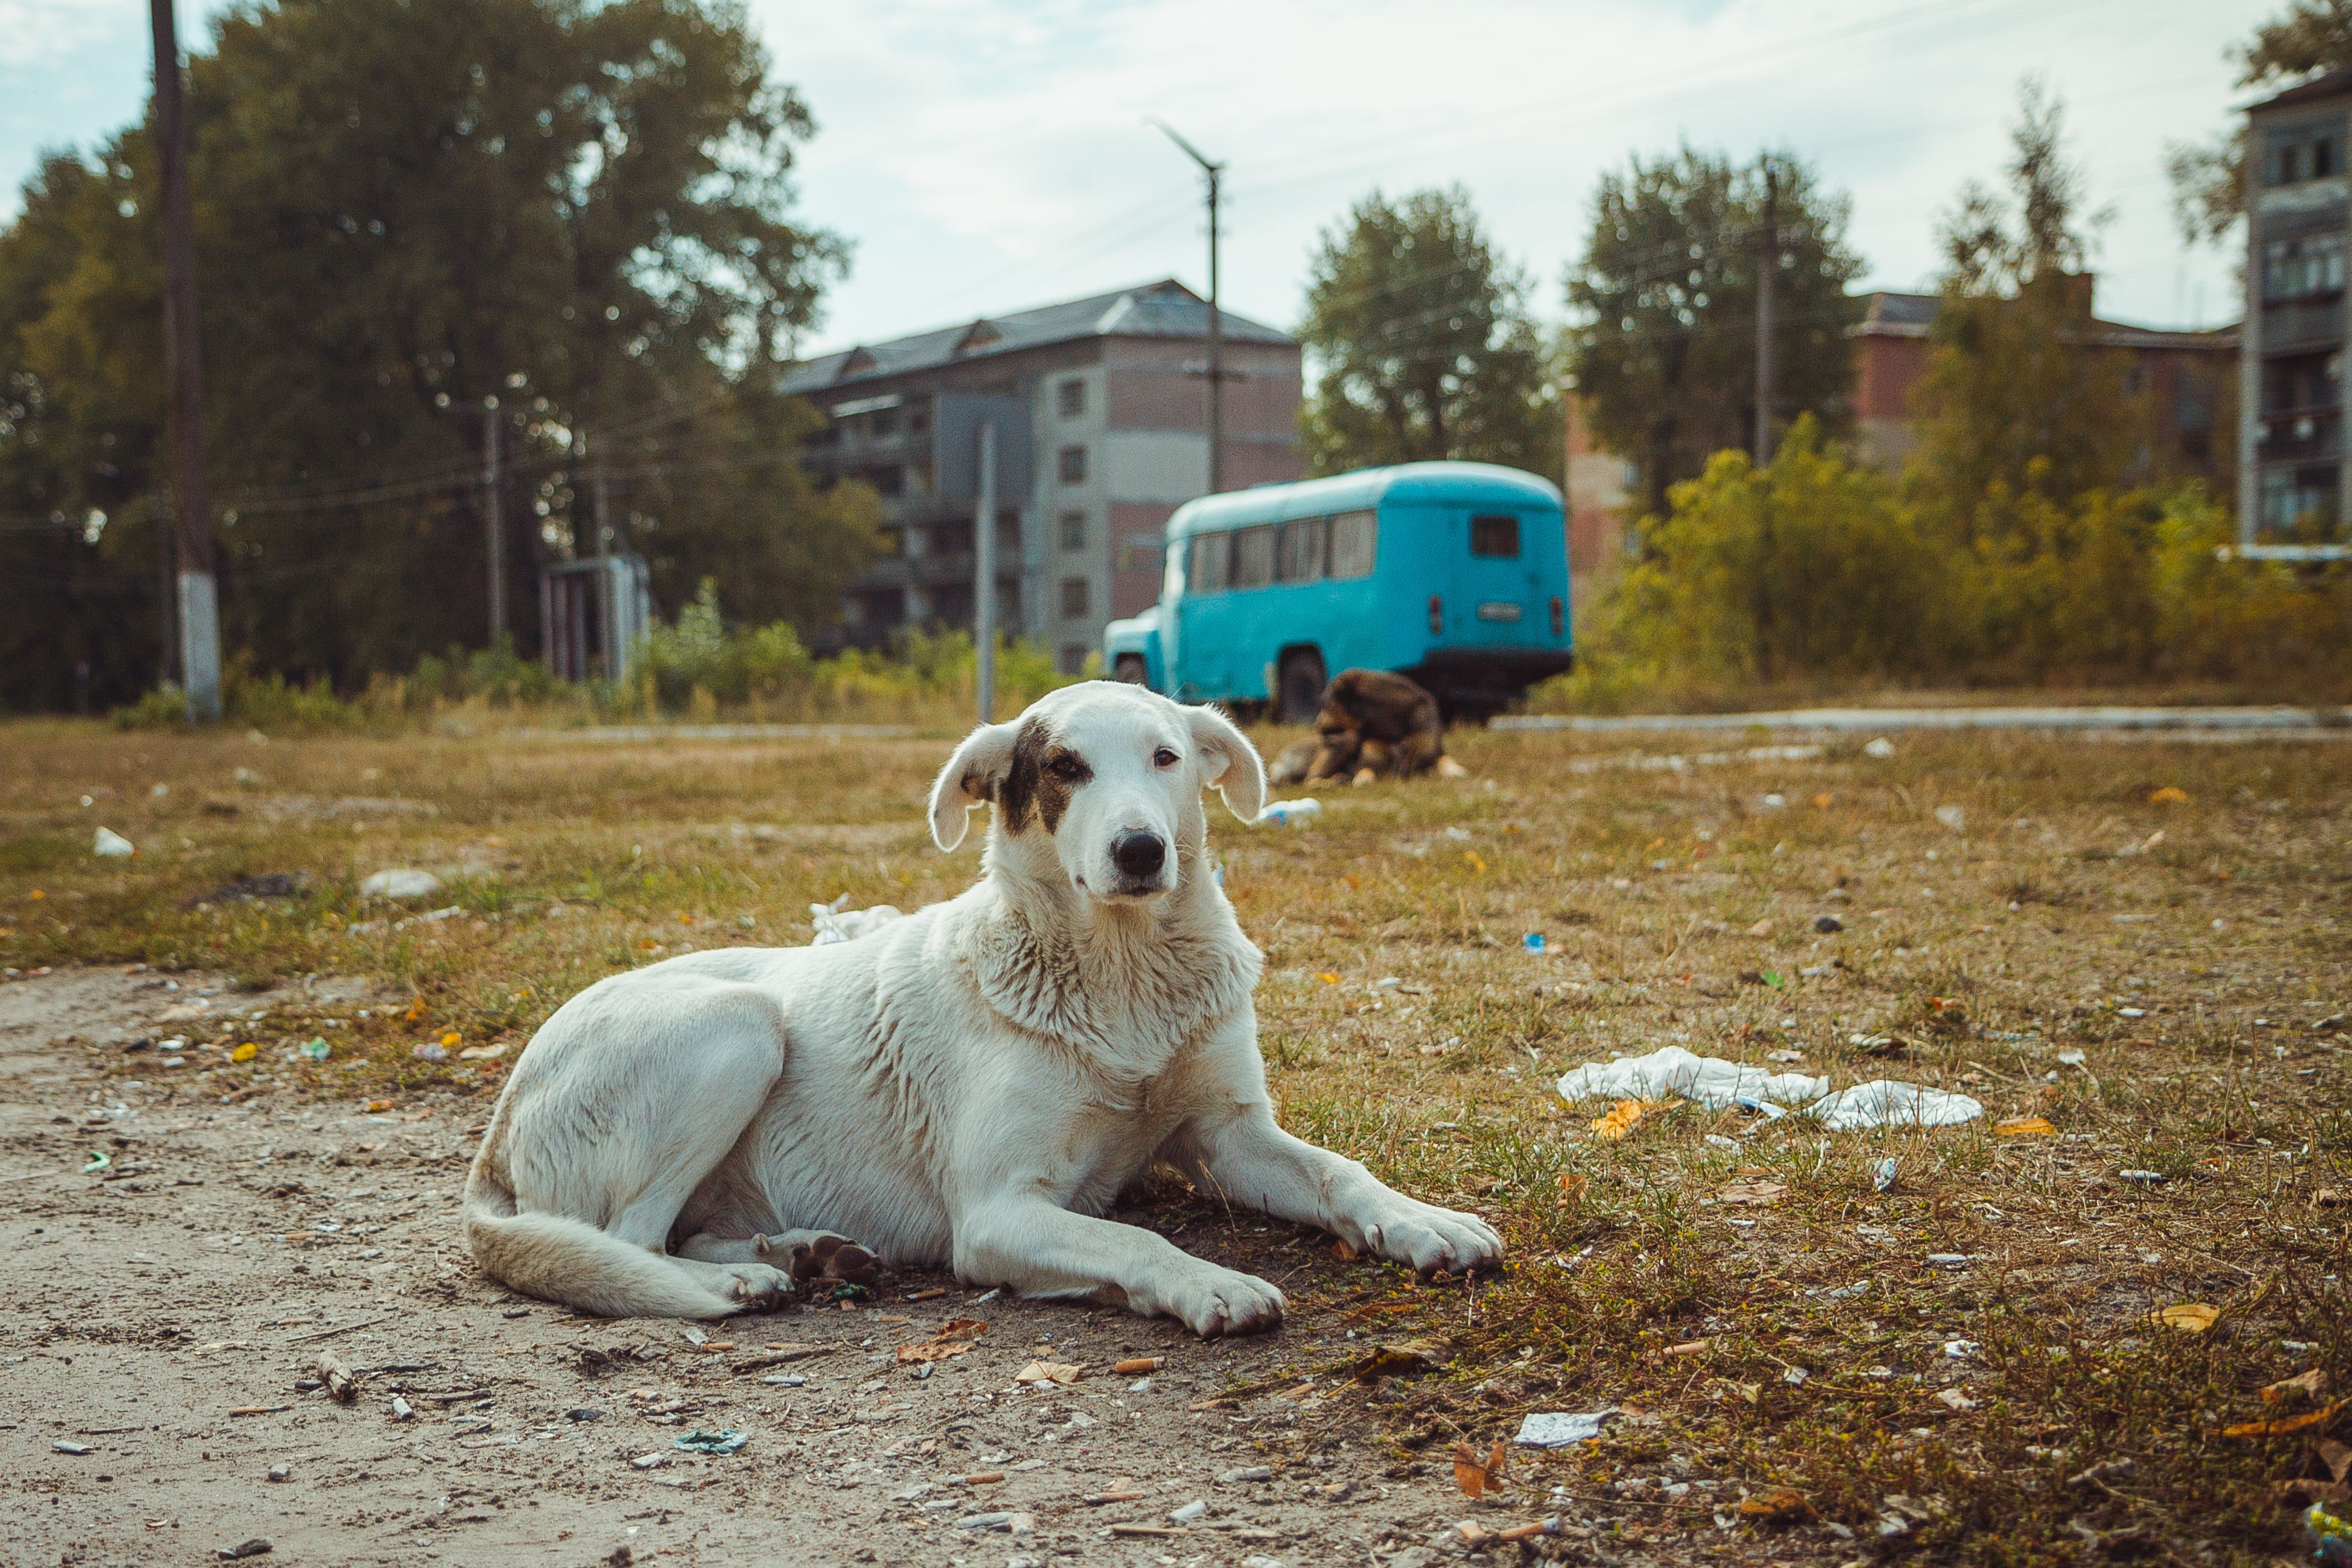 Homeless wild dog in old radioactive zone in Pripyat city - abandoned ghost town after nuclear disaster. Chernobyl exclusion zone.   Foto von: Sergiy Romanyuk via Shutterstock